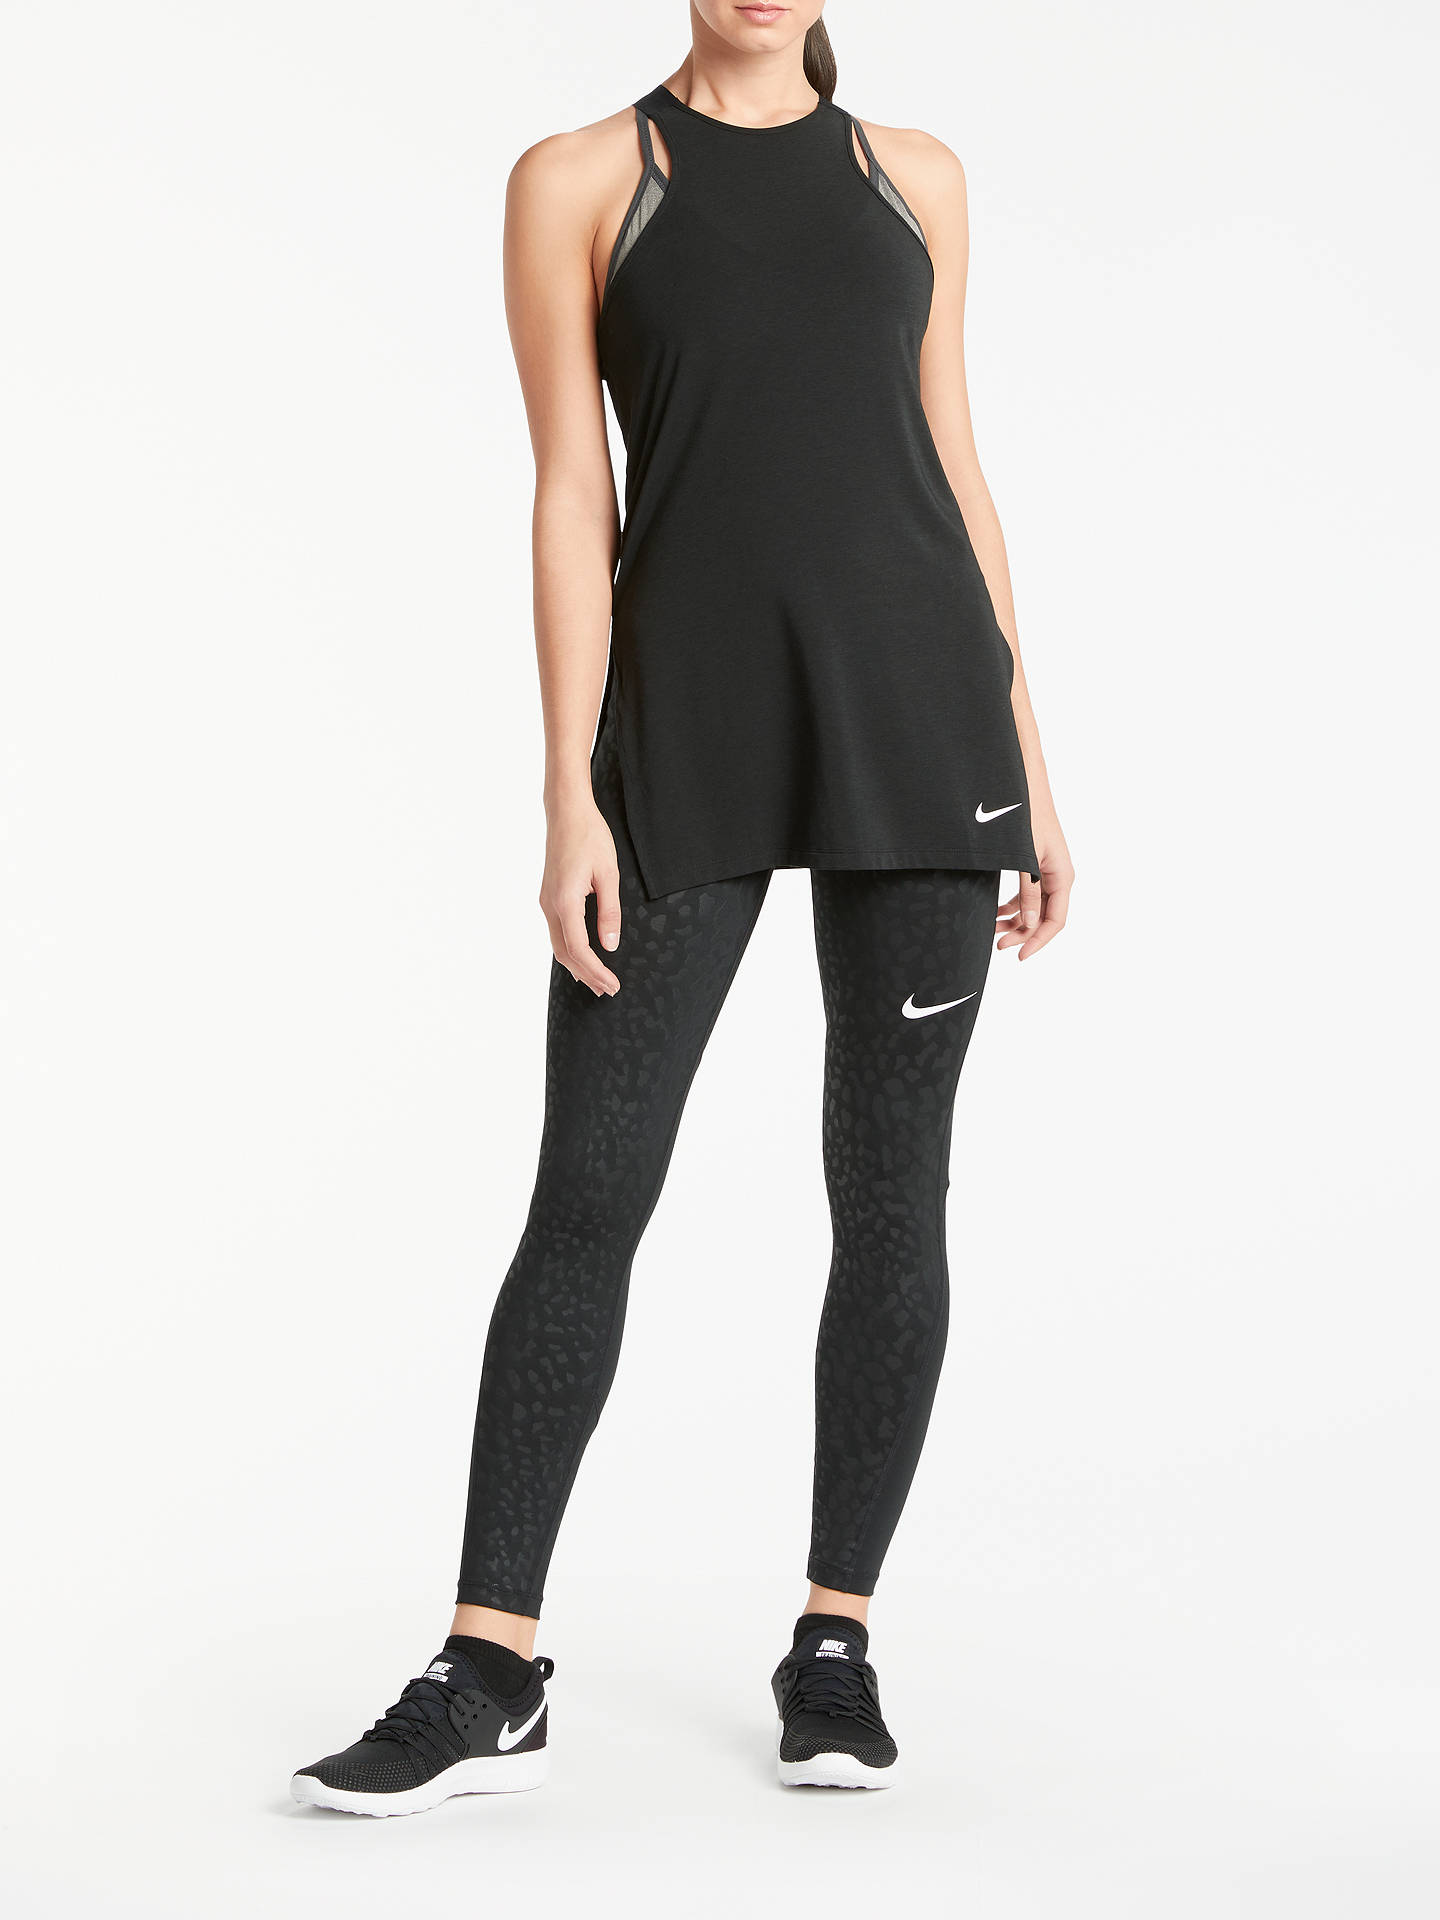 2eac134725 ... BuyNike Pro Training Tights